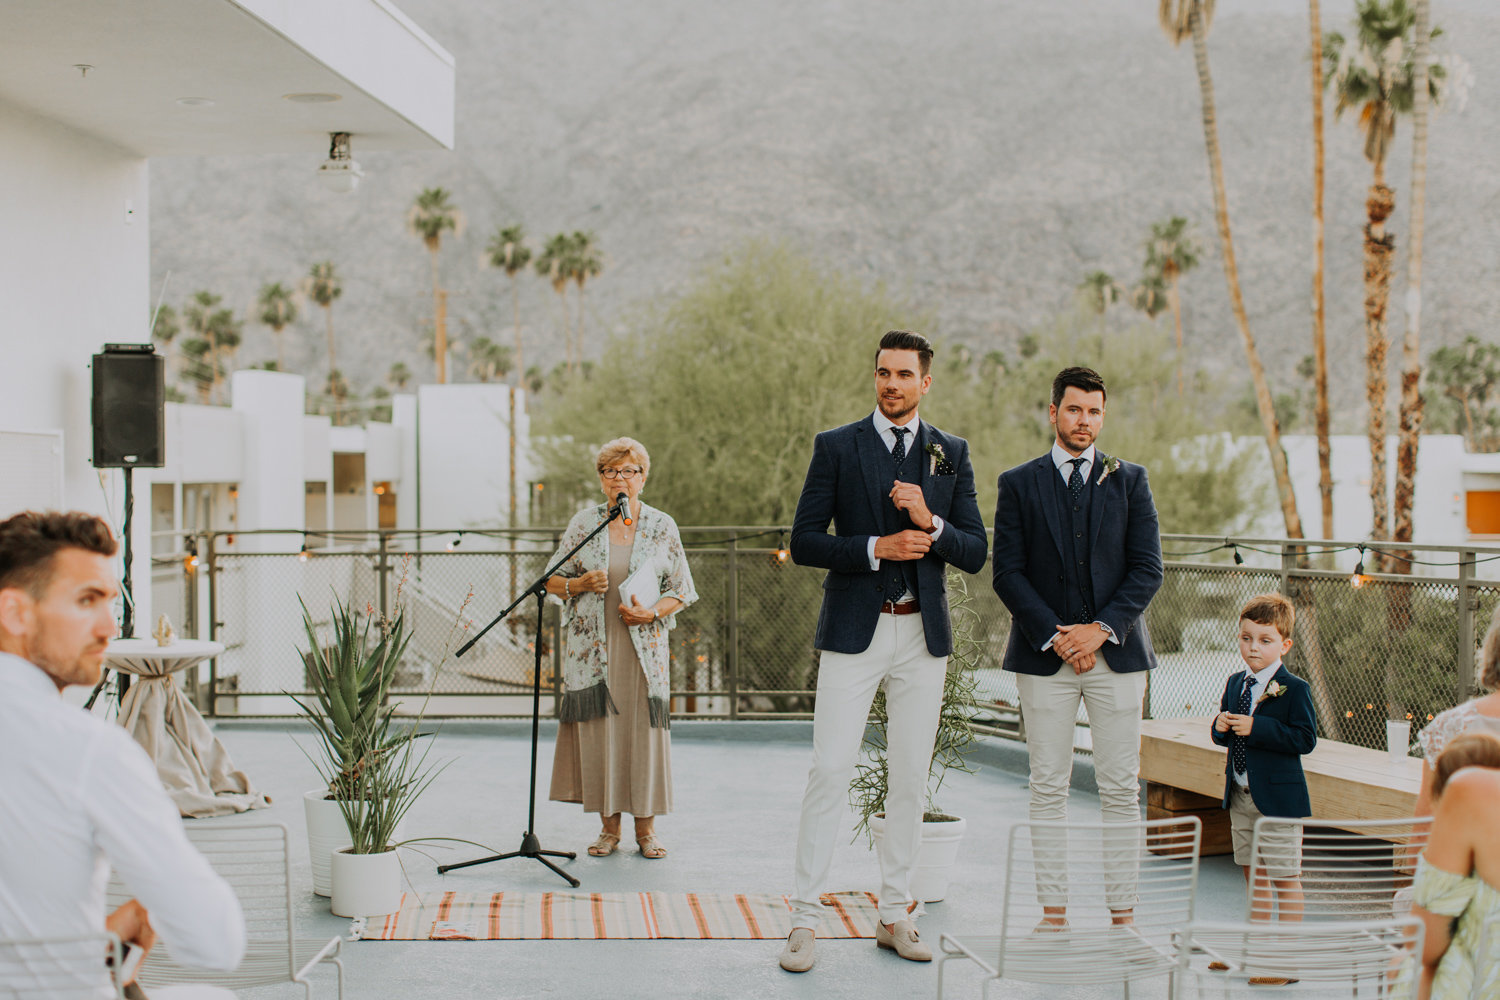 Brianna Broyles_Palm Springs Wedding Photographer_Ace Hotel Wedding_Ace Hotel Palm Springs-38